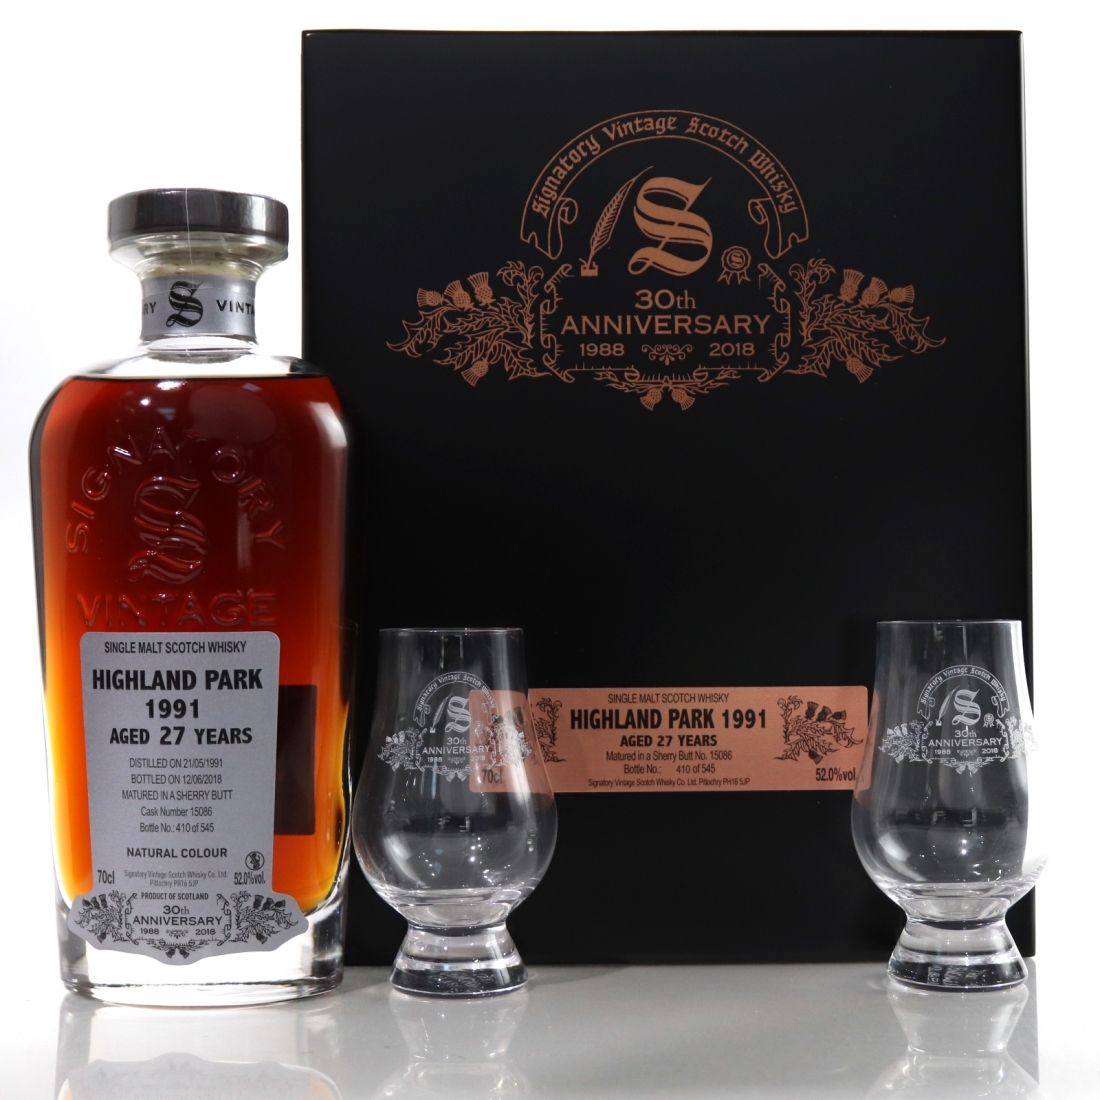 Highland Park 1991 Signatory Vintage 27 Year Old / 30th Anniversary